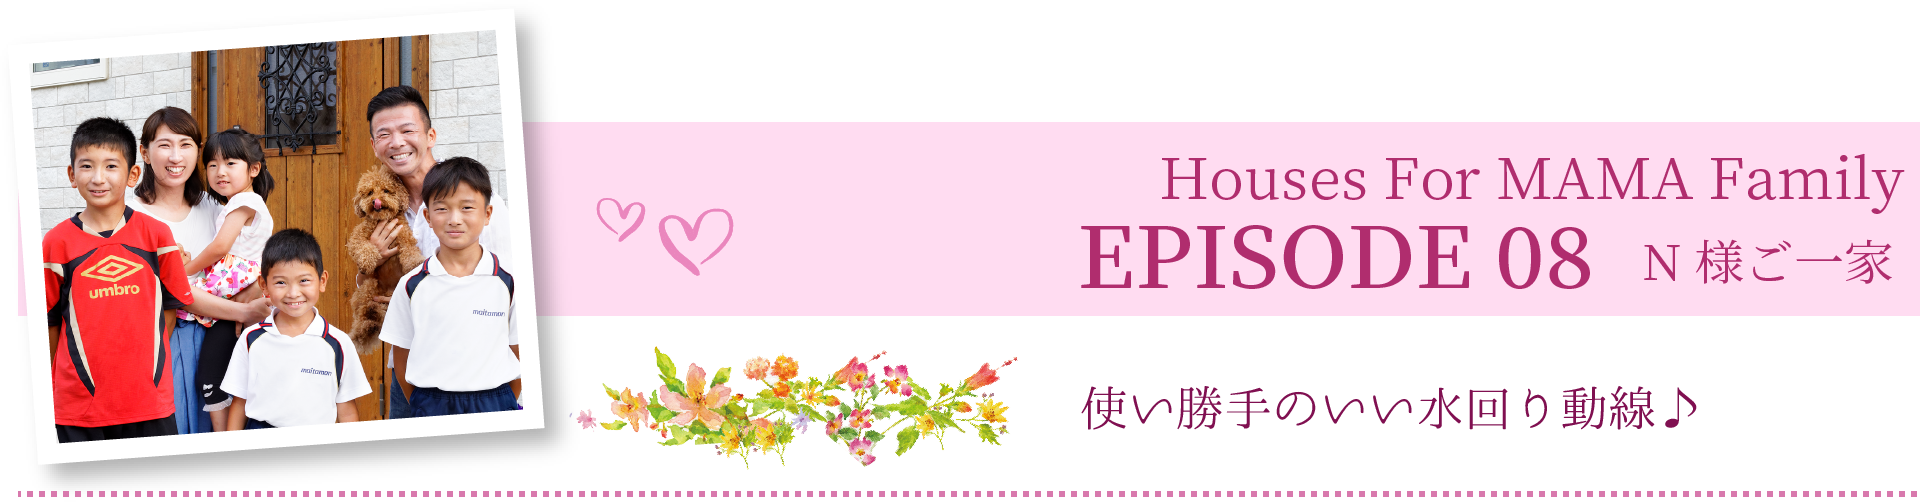 Houses For MAMA Family EPISODE 06 N様ご一家